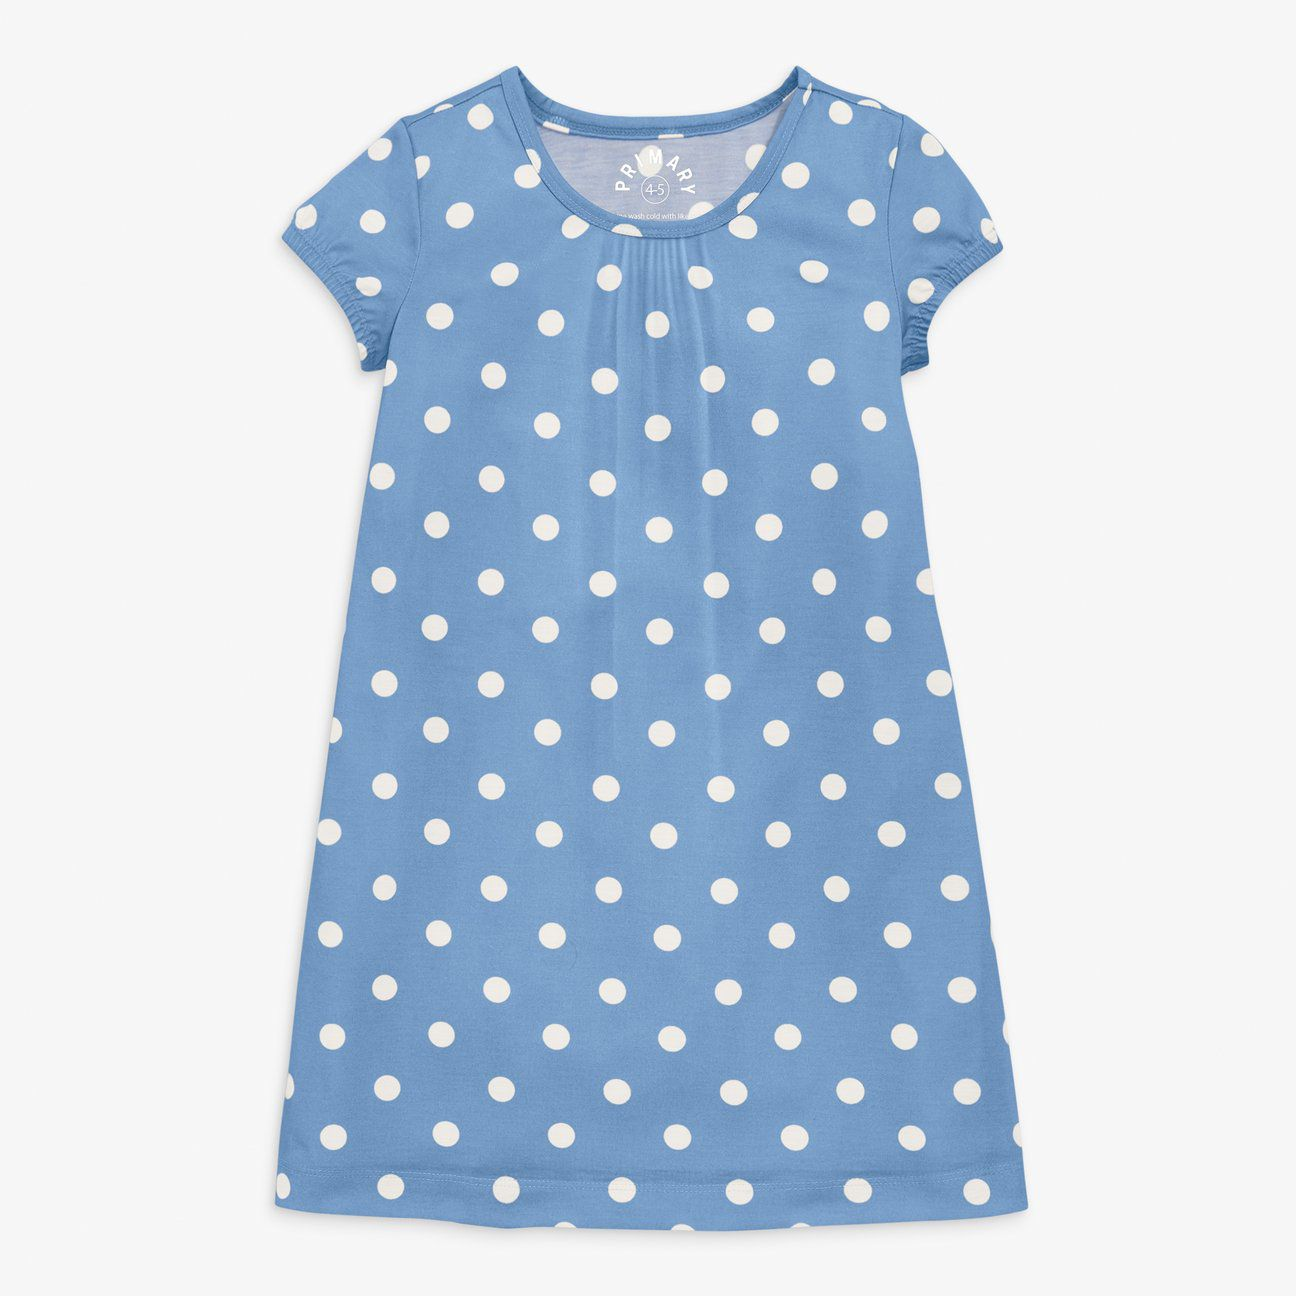 Nightgown in dot